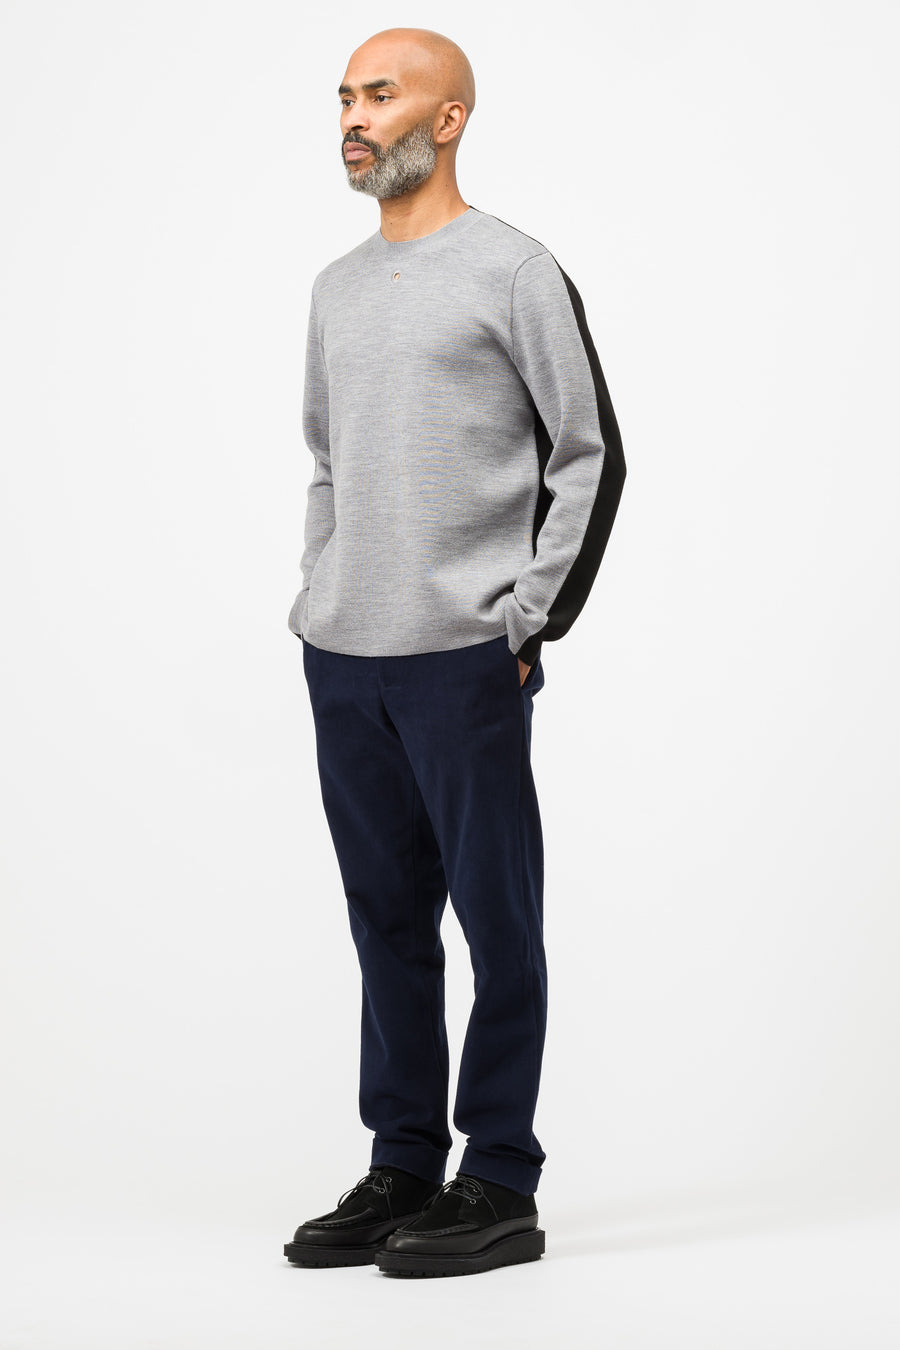 Craig Green Merino Knit Contrast Jumper in Grey - Notre